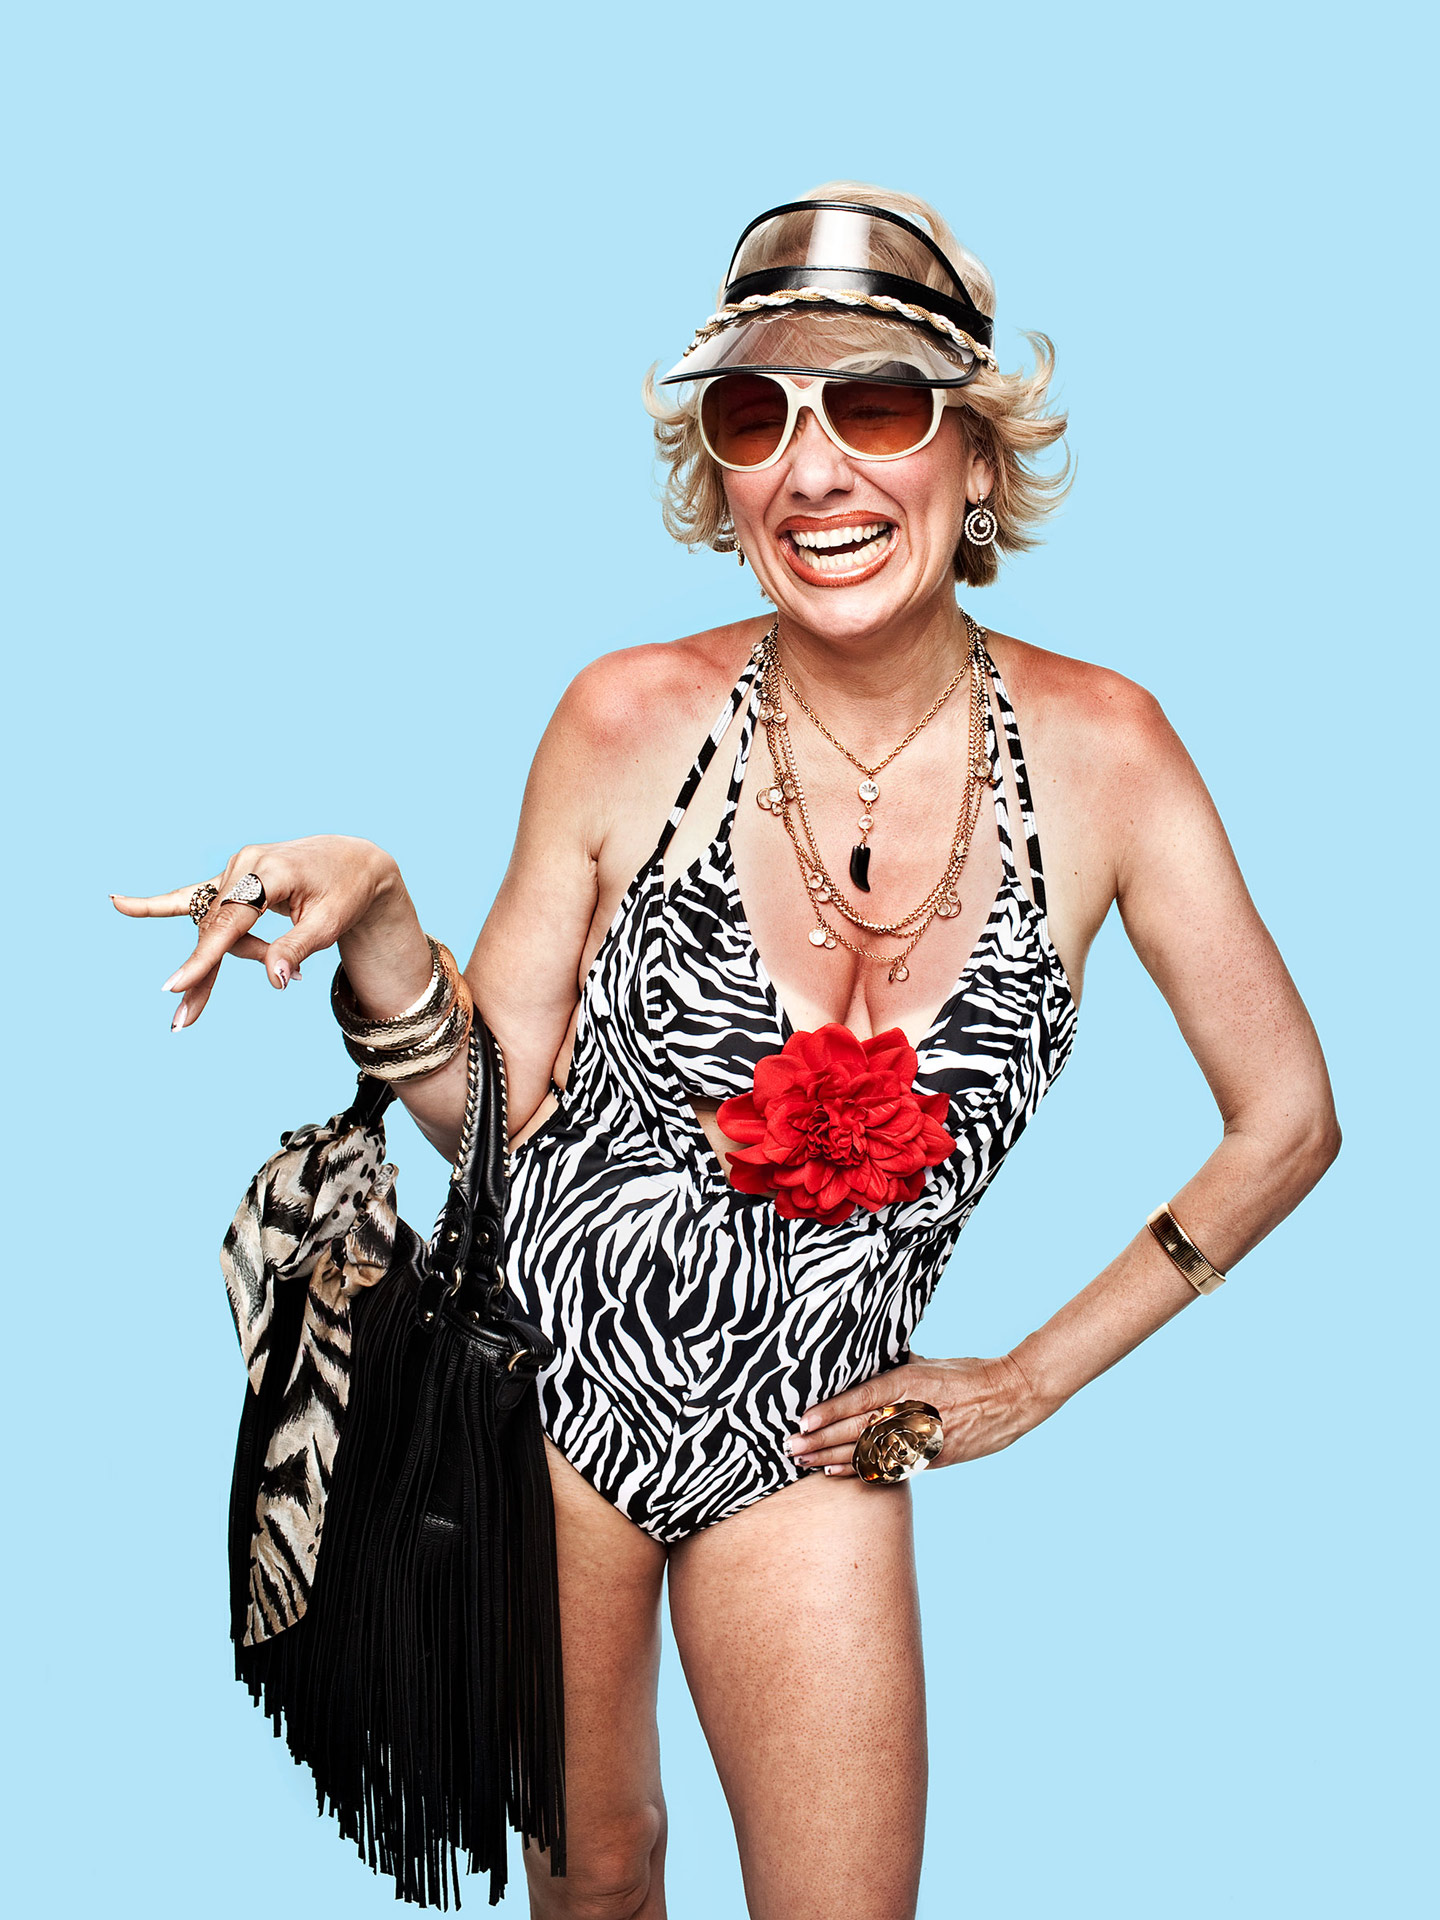 old woman in bathing suit for Educalcool campaign by Jocelyn Michel